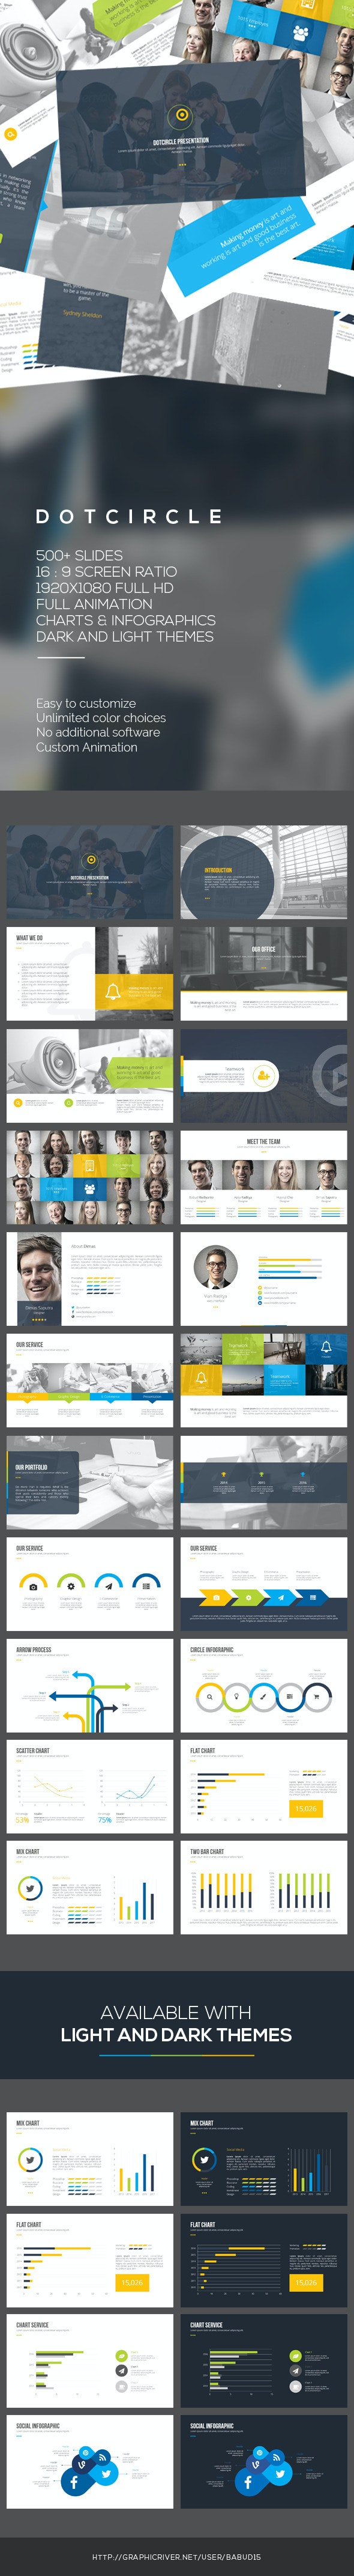 Dotcircle PowerPoint Template - PowerPoint Templates Presentation Templates